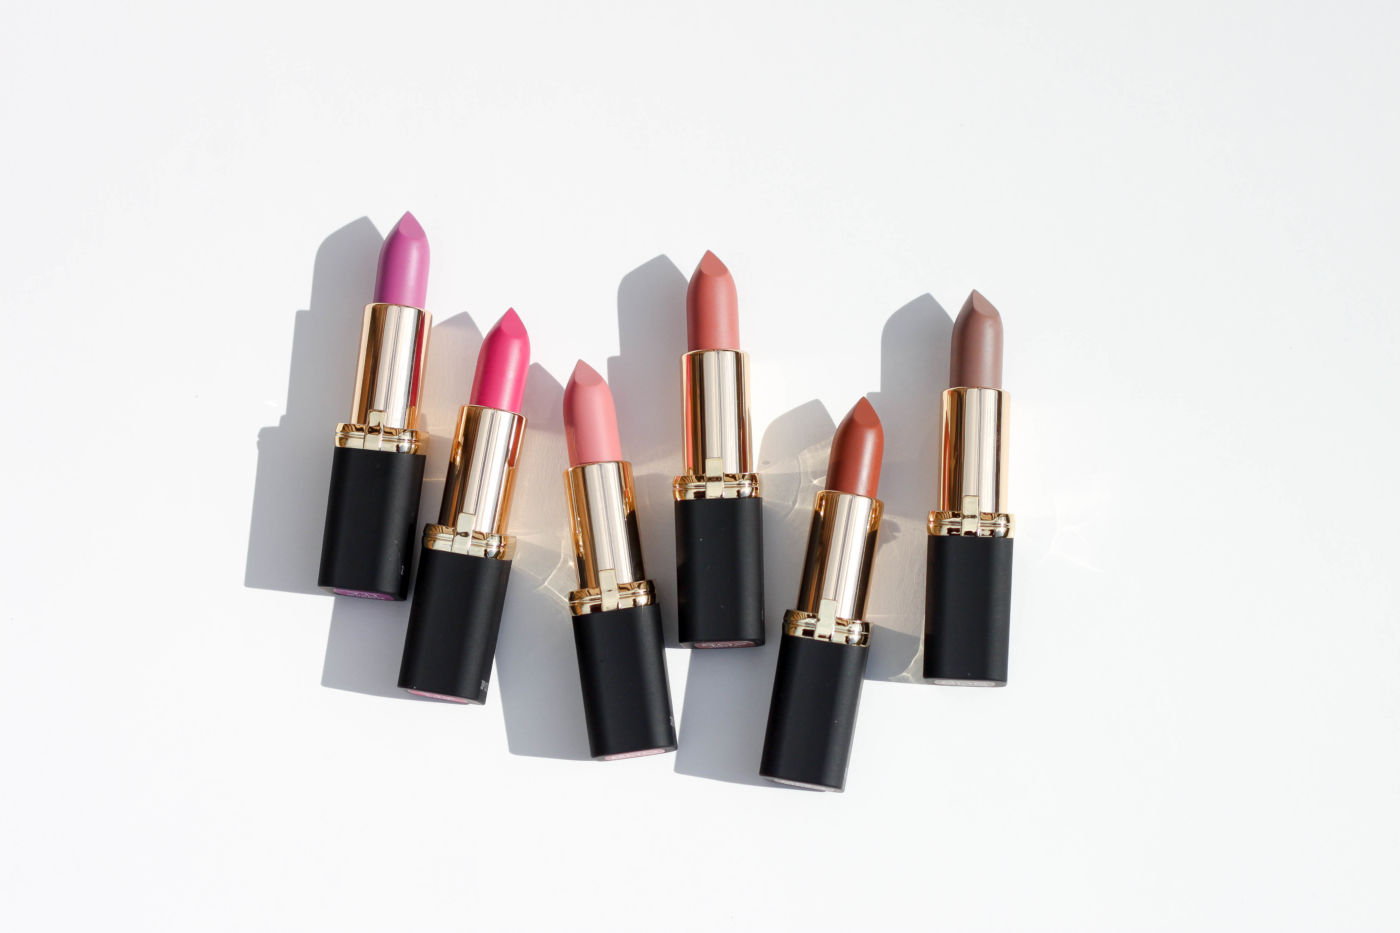 l'oreal paris colour riche matte lipstick, matte lipstick, matte drugstore lipstick, best matte lipsticks, new matte l'oreal lipstick, l'oreal matte lipstick shades, l'oreal matte lipstick swatches, best matte lisptick swatches, l'oreal colour riche matte swatches, matte-ly in love swatch, devil's matte-vocate swatch, matte-traction red, doesn't matte-r, matte-moiselle pink, matte-jestic, at the drop of the matte, matte-mandate, matte-caron, matte-sterpiece, he thinks he's matte-cho, matte-itude, matte red lipstick, matte pink lipstick, matte nude lipstick